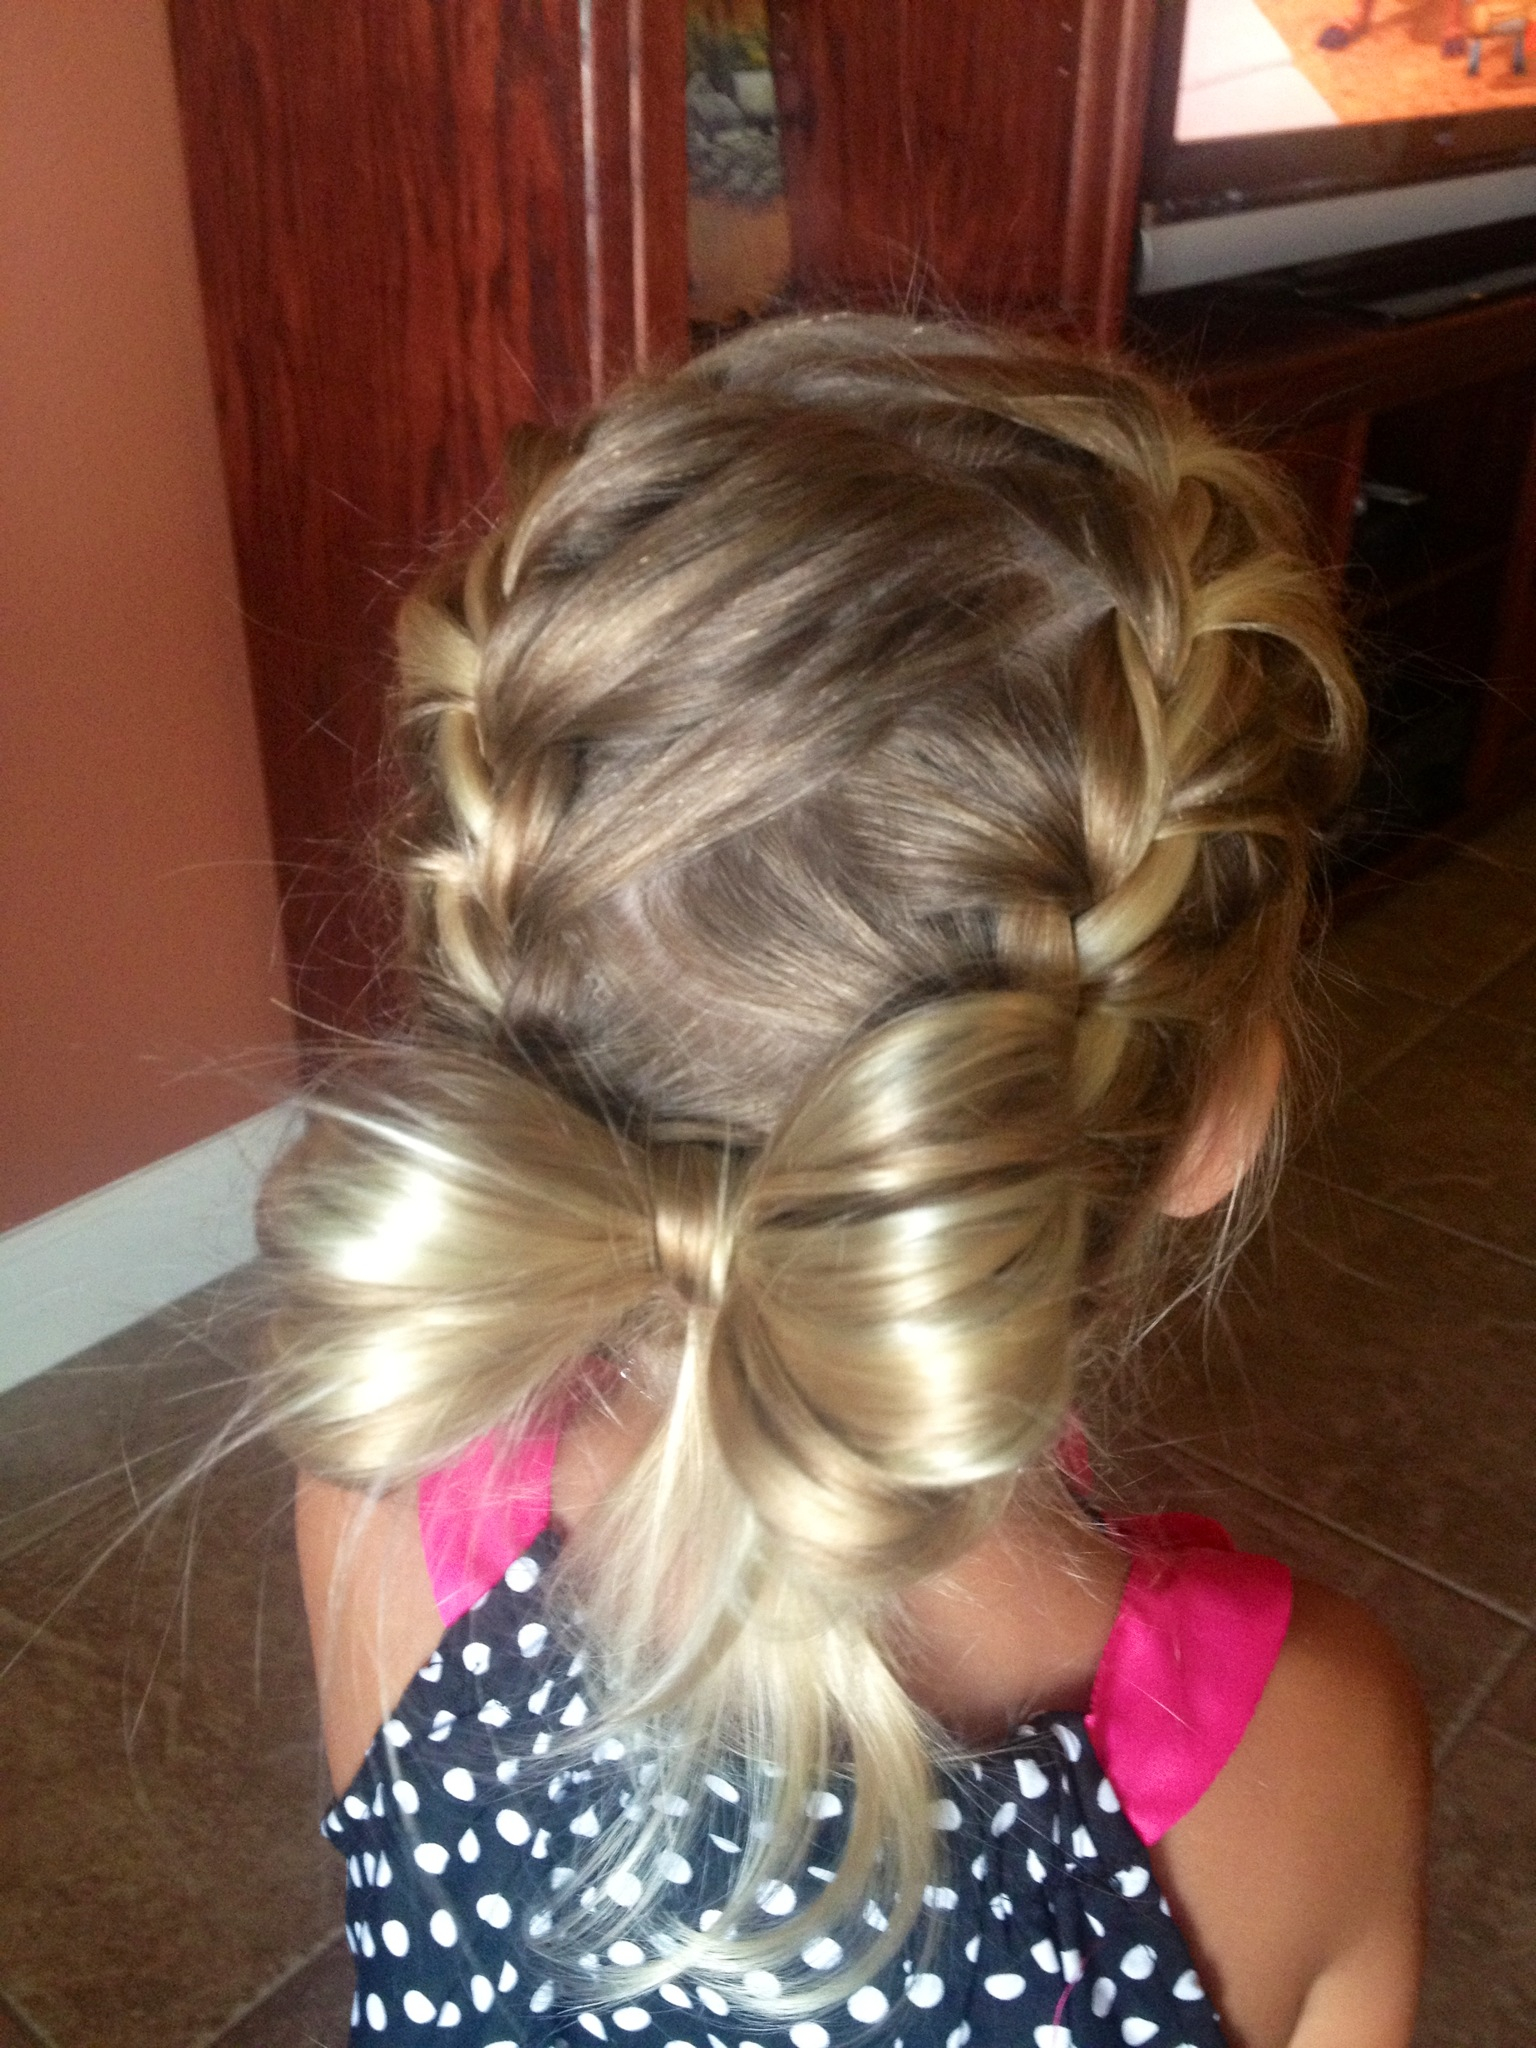 Enjoyable Cute Christmas Party Hairstyles For Kids Hairstyles 2017 Hair Short Hairstyles For Black Women Fulllsitofus